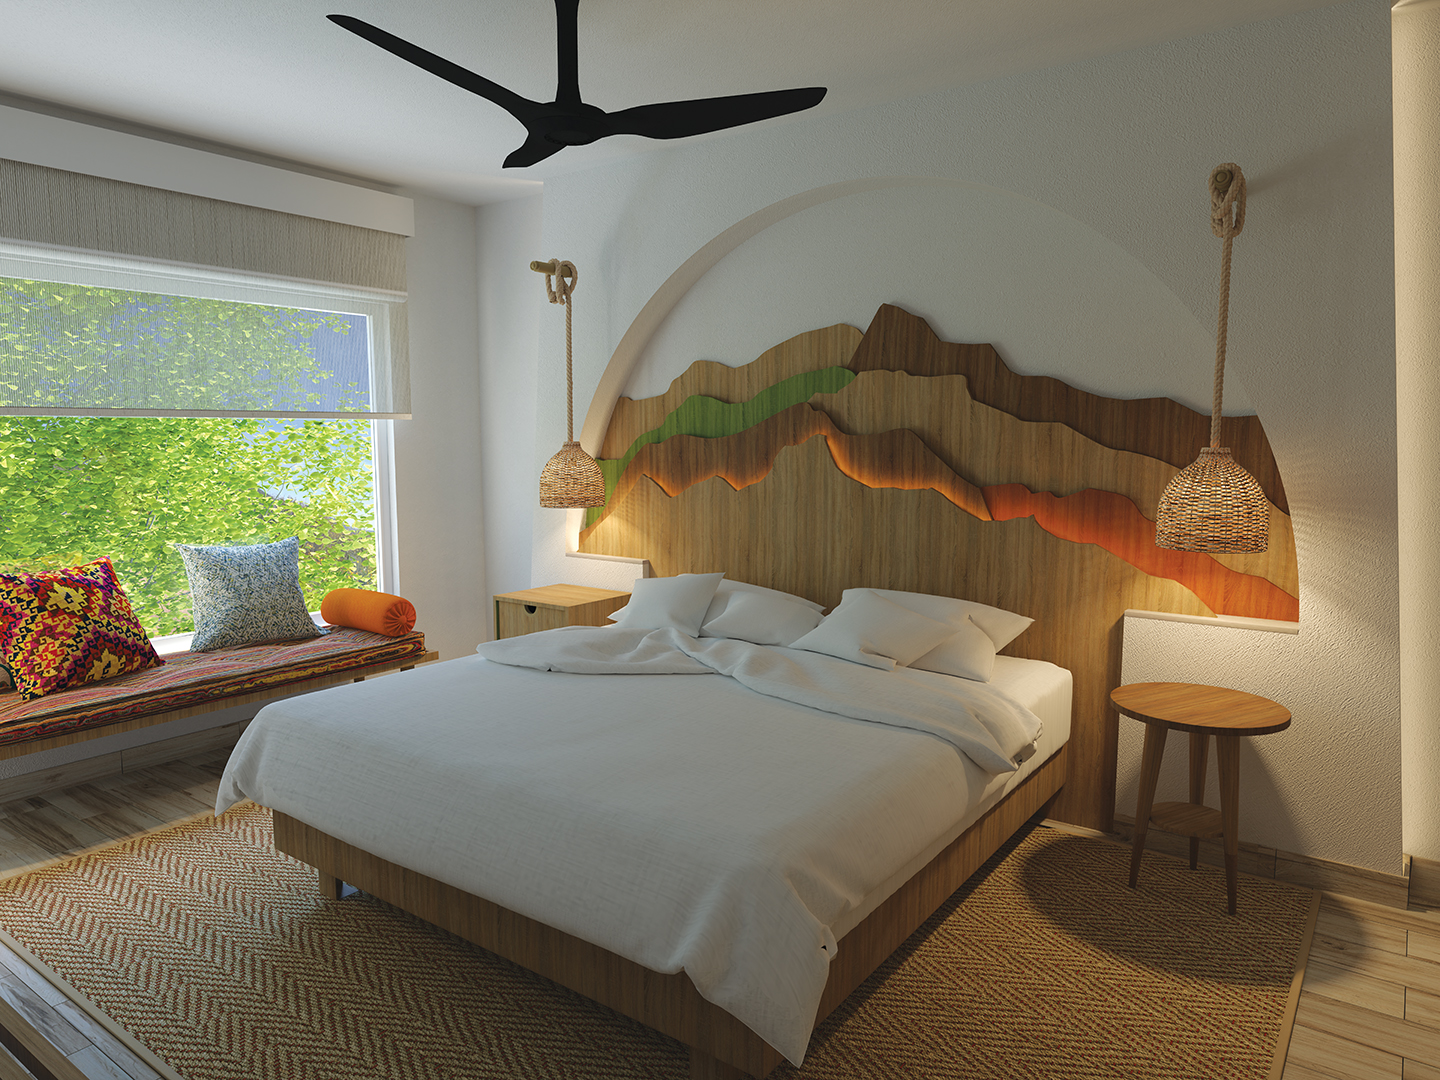 Image of the Master Bedroom